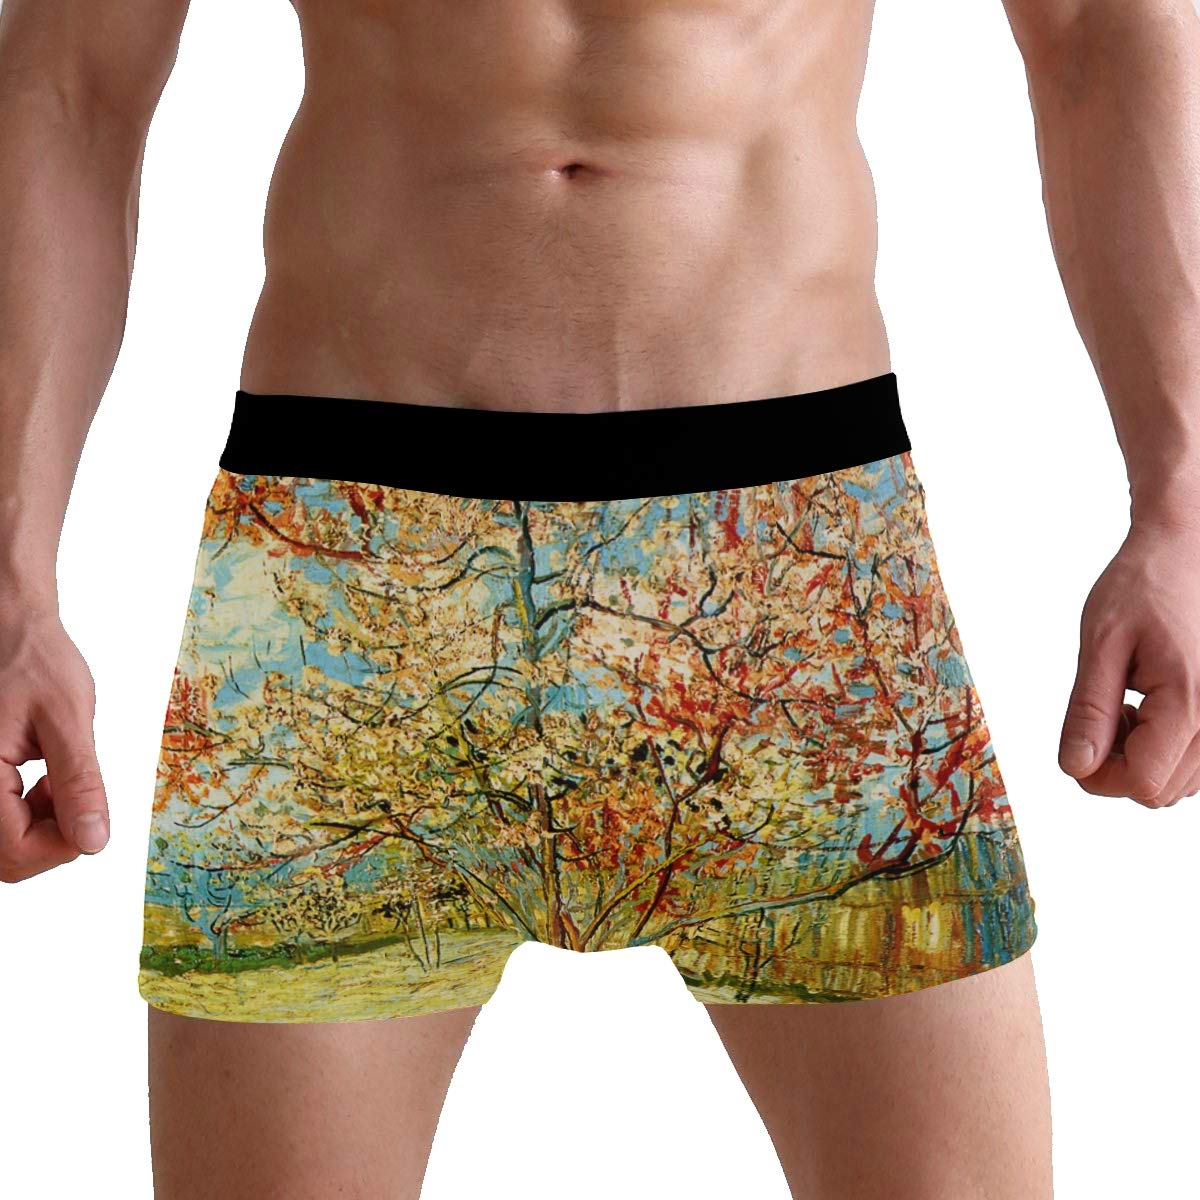 SUABO Men Boxer Briefs Polyester Underwear Men 2 Pack Boxer Briefs for Valentines Gift with Tree Pattern